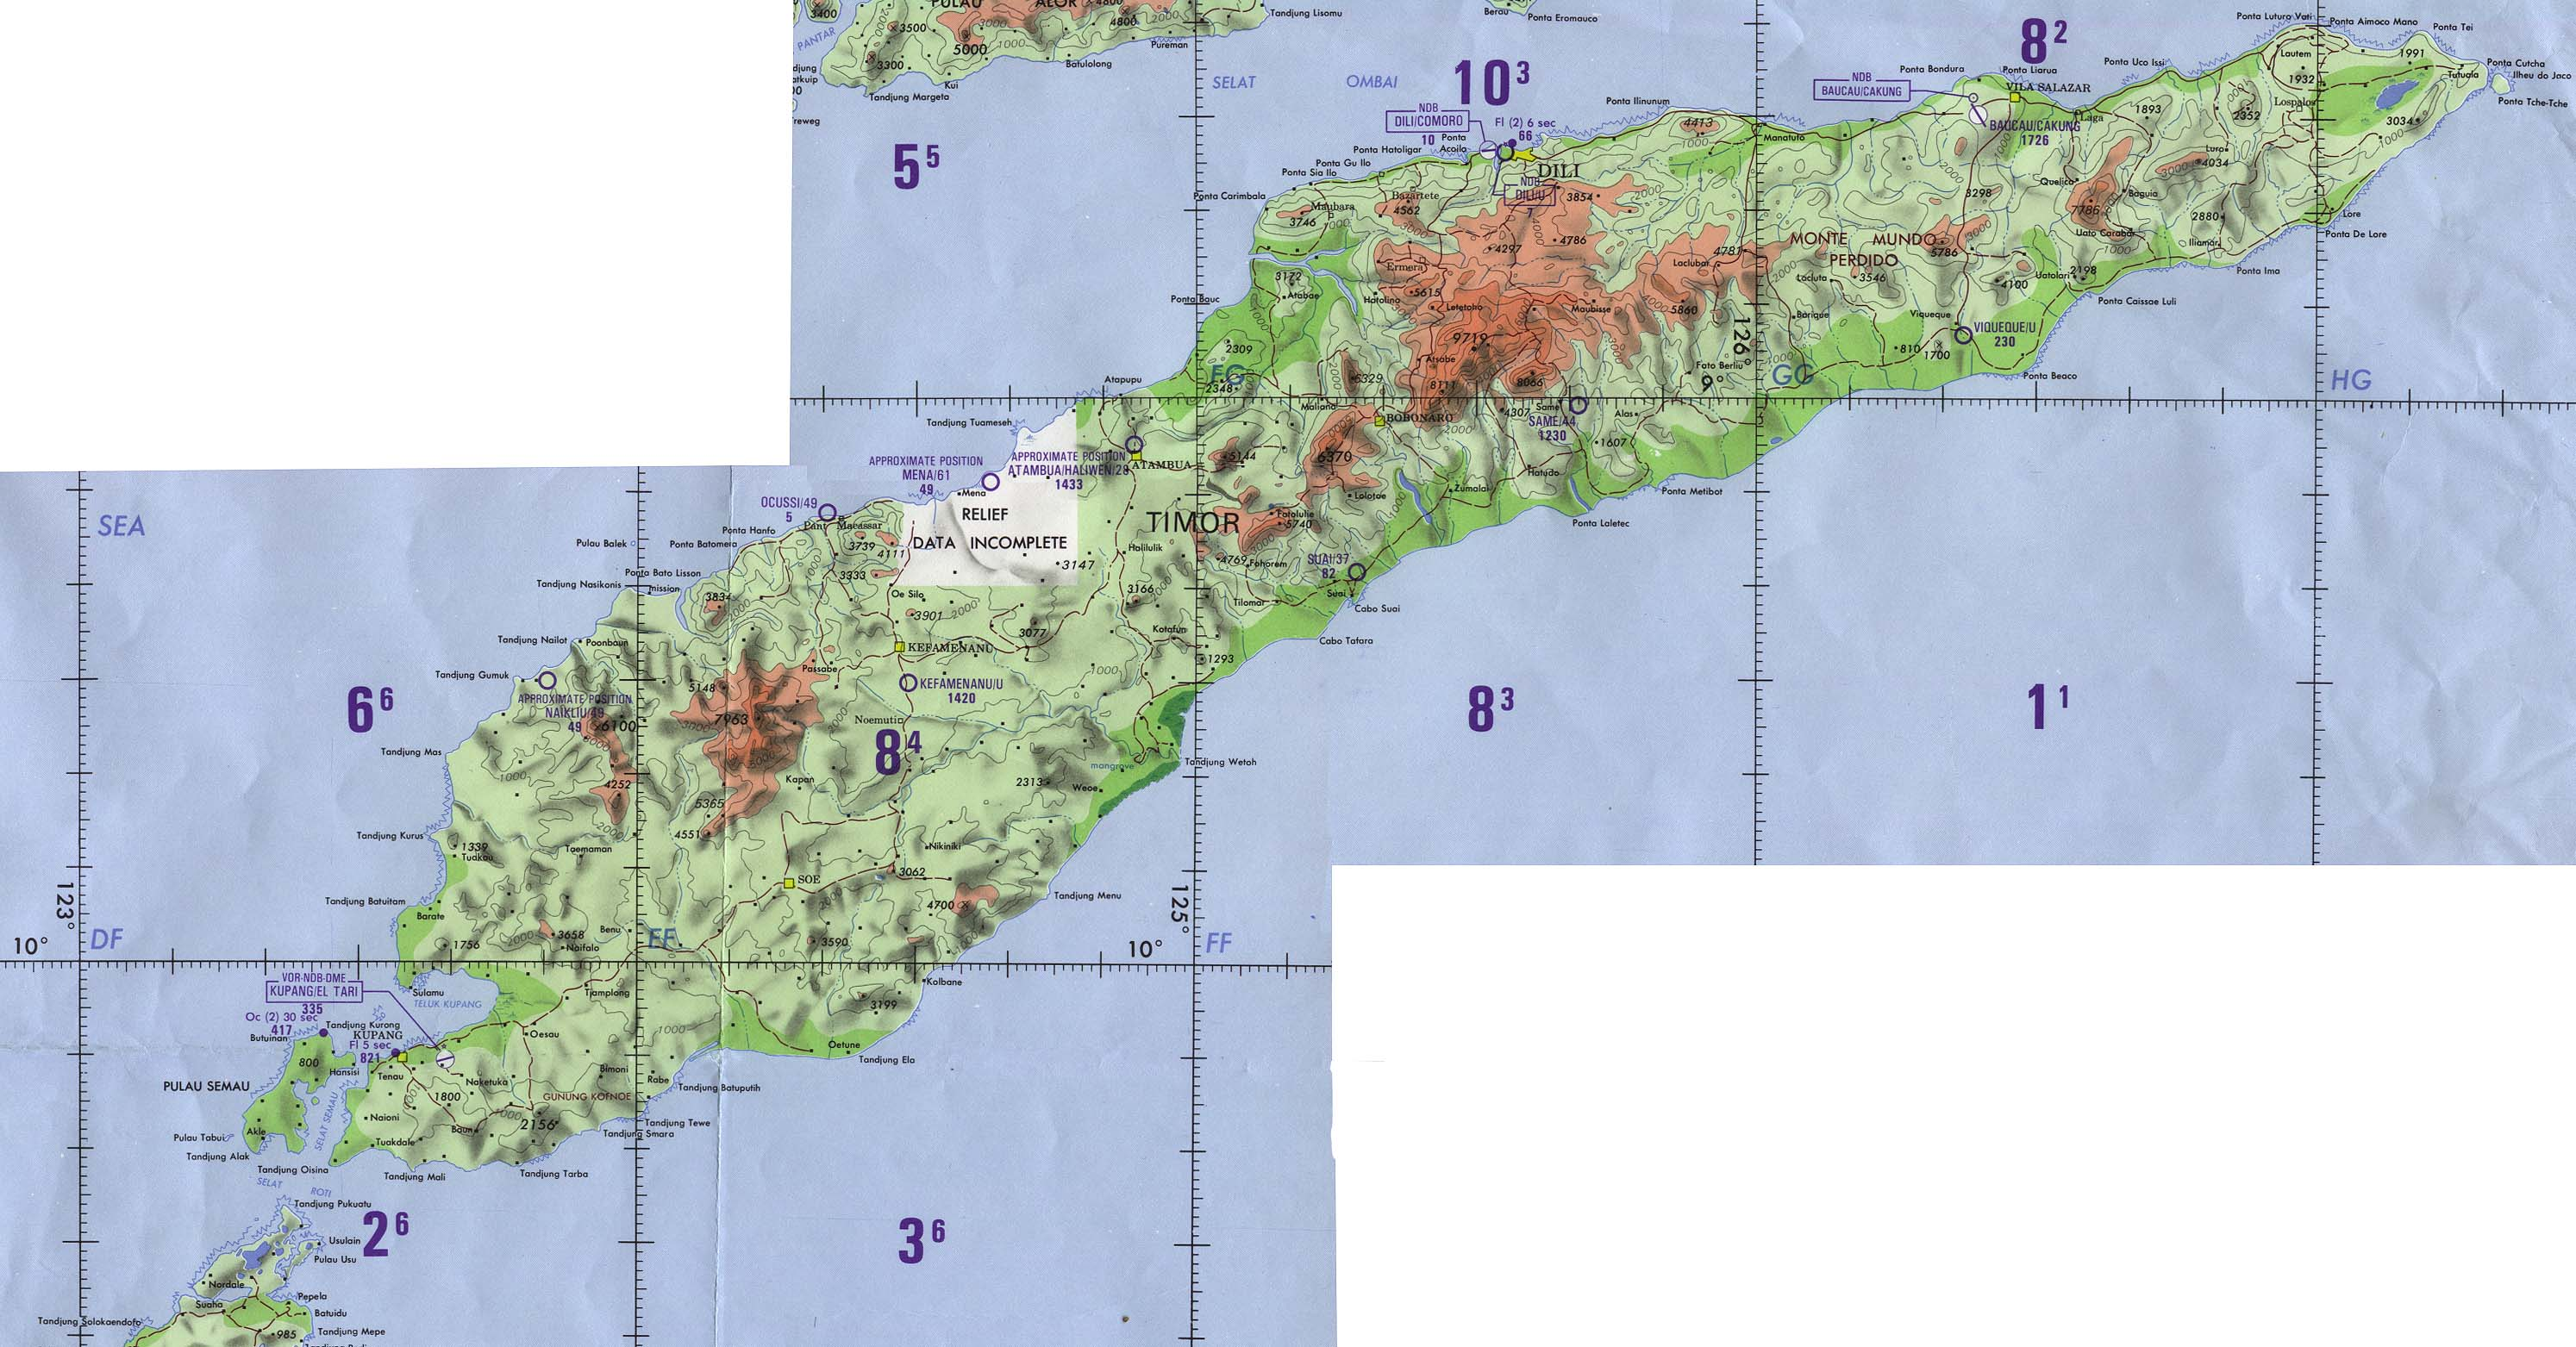 timor operational navigation chart original scale 1 1 000 000 portion of defense mapping agency onc